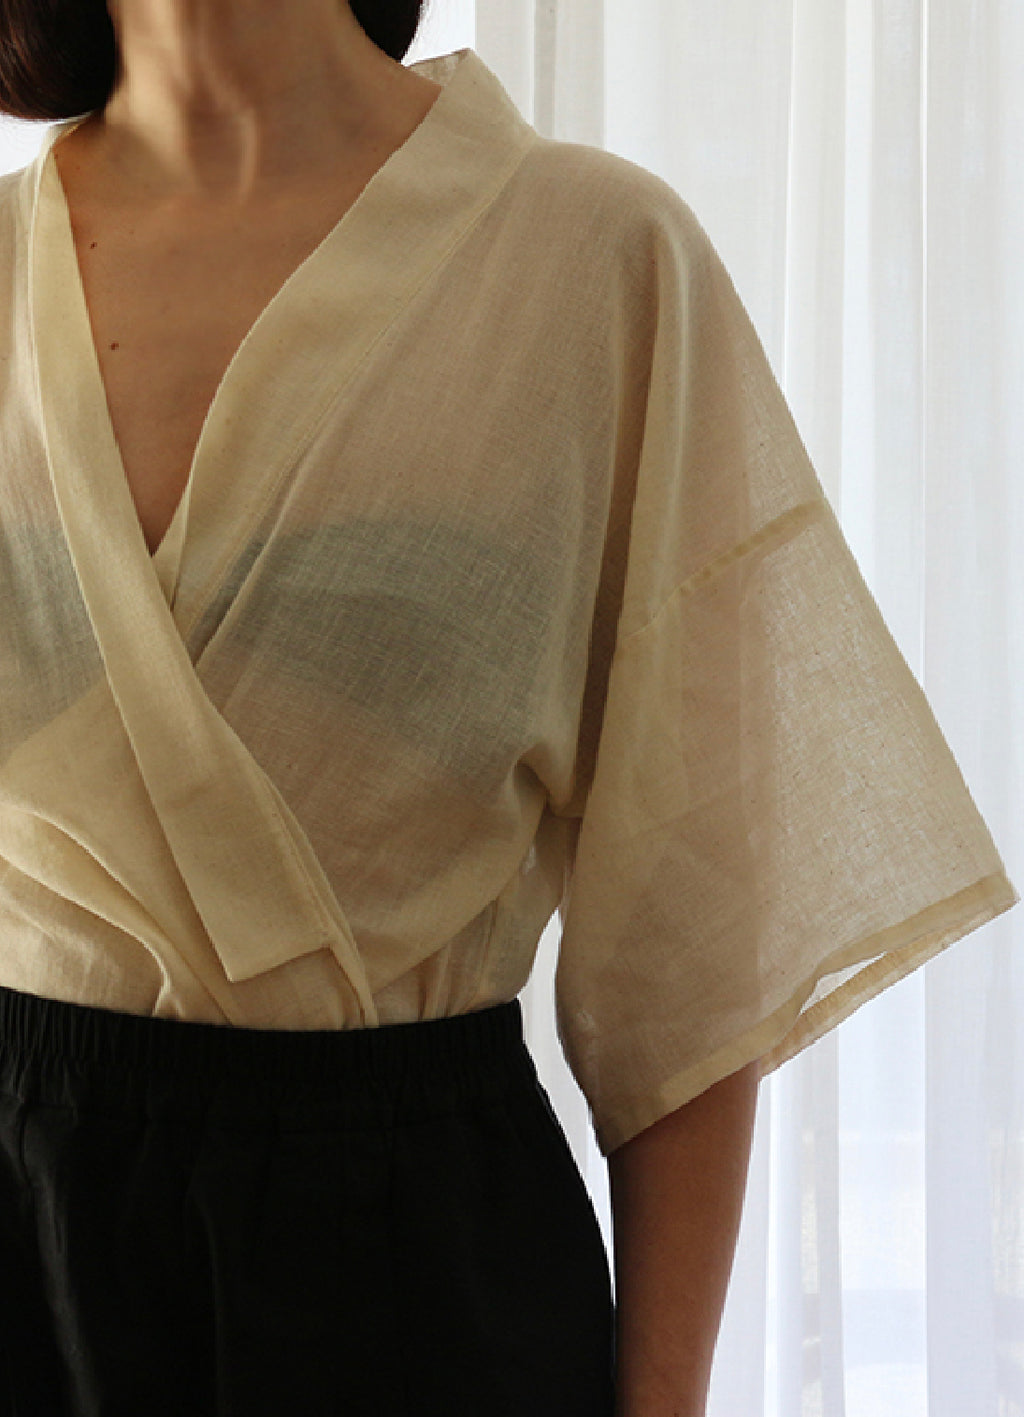 A.P.Monde zero waste design. Blouse One, off white cotton, loose cut and signature french seams